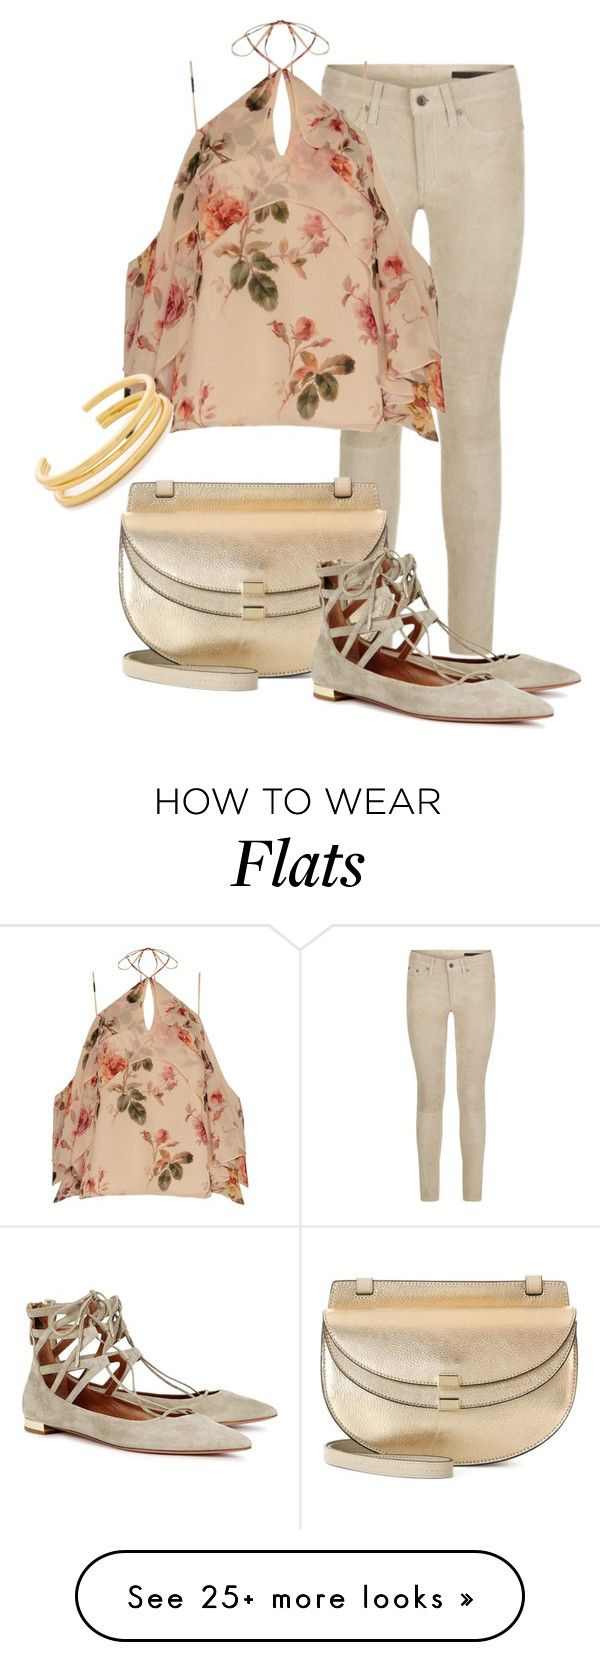 """pastels"" by jana-zed on Polyvore featuring rag & bone, Exclusive for Intermix, Chloé, Aquazzura, Madewell, chloe, ragandbone and intermix"